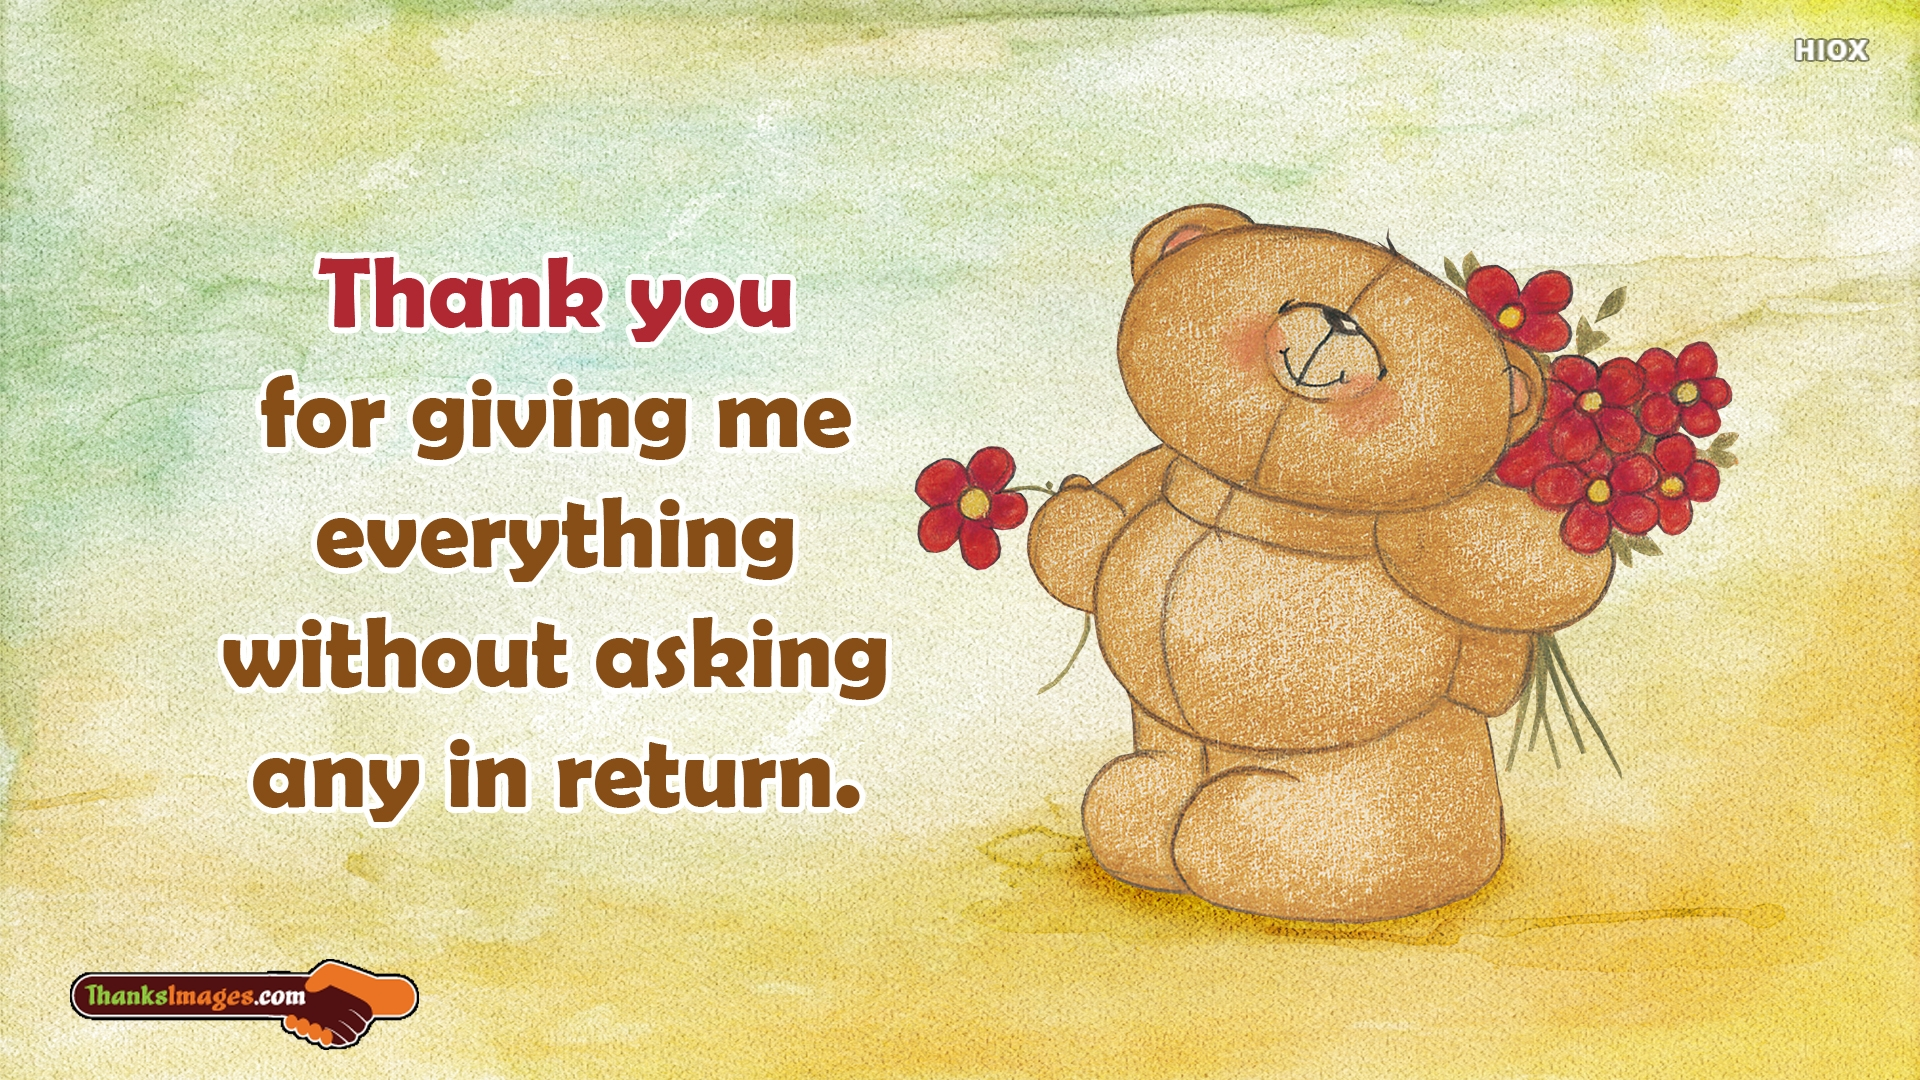 Thank You For Giving Me Everything Without Asking Any In Return.